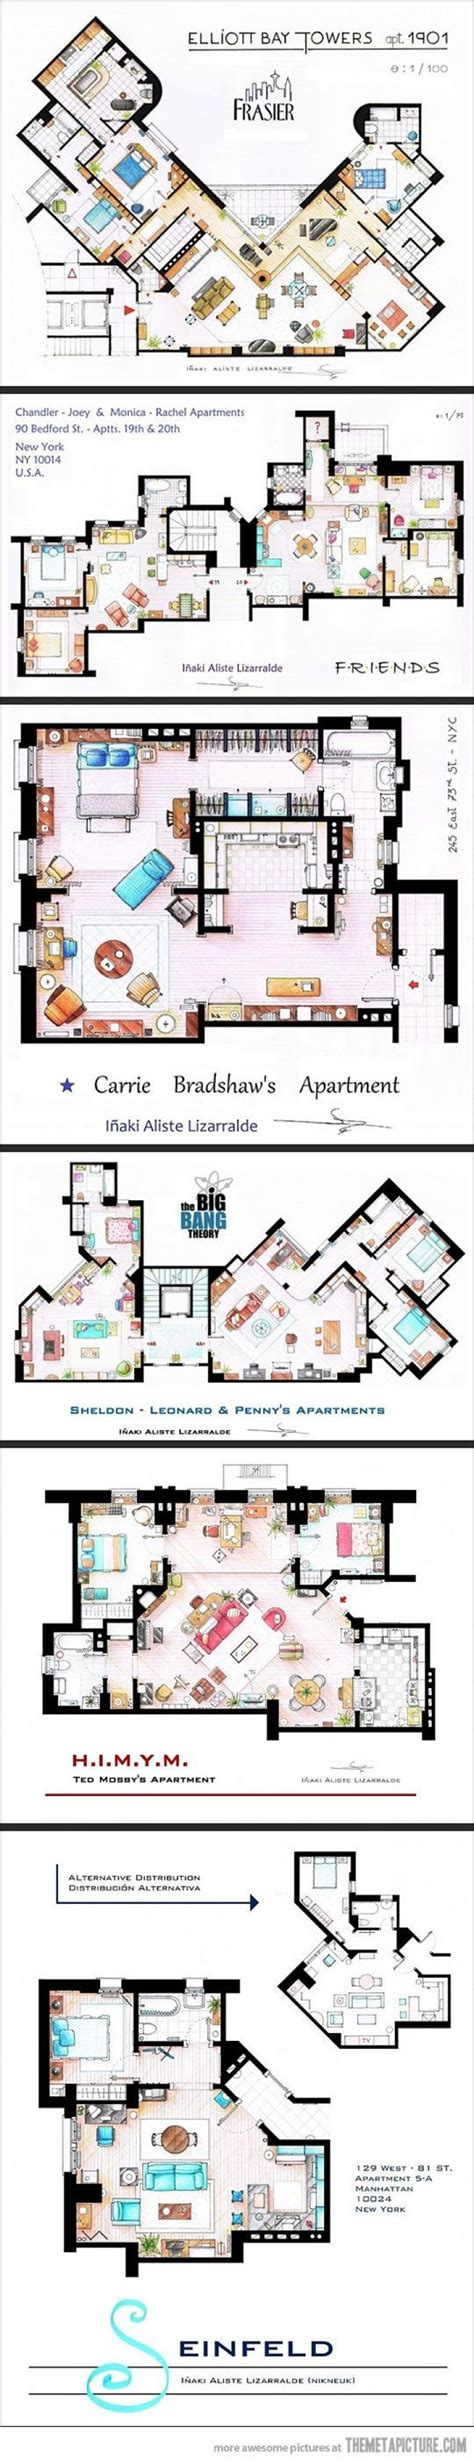 big bang theory floor plan 17 best images about floor plans on pinterest house